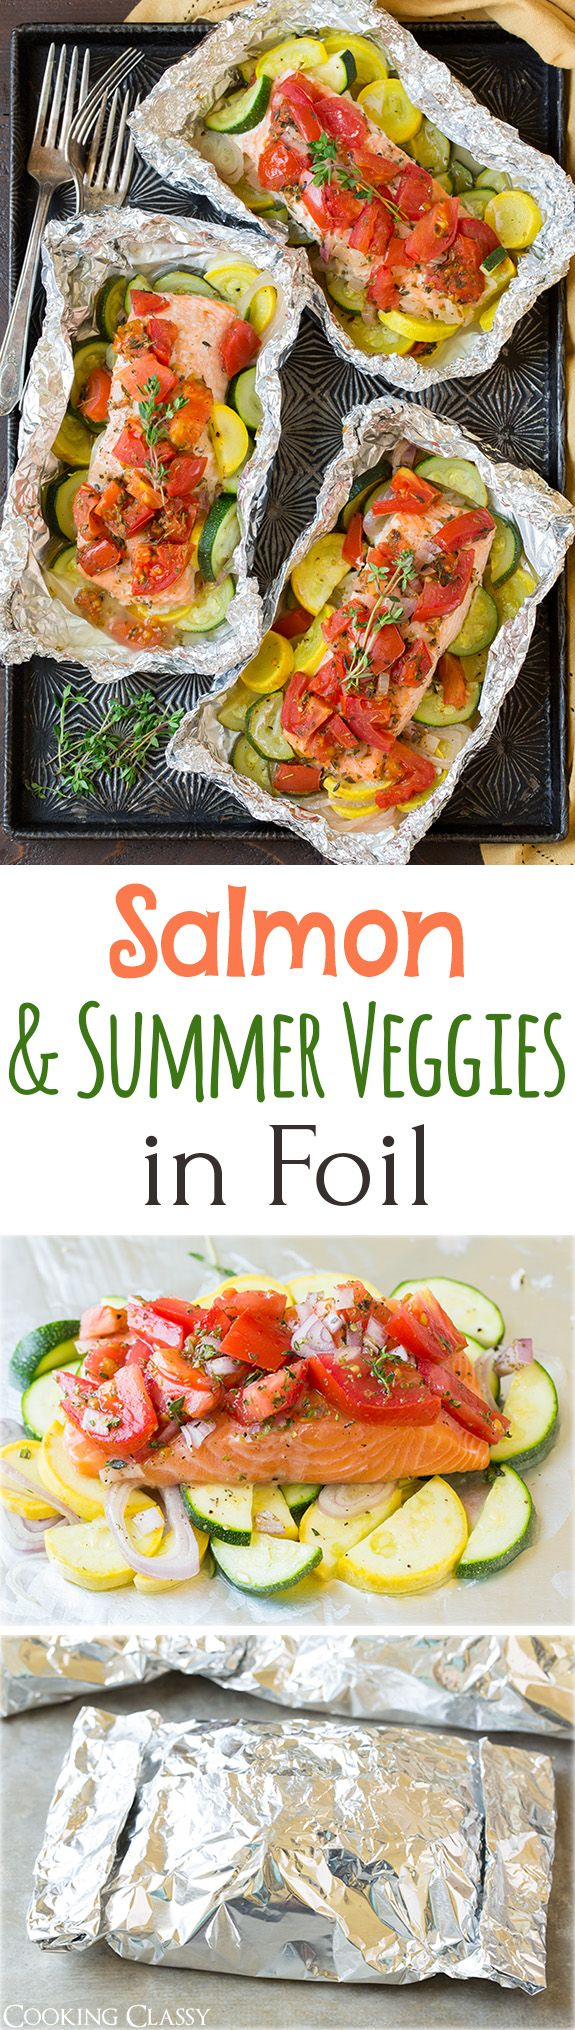 Food and Drink: Salmon and Summer Veggies in Foil - Cooking Classy...